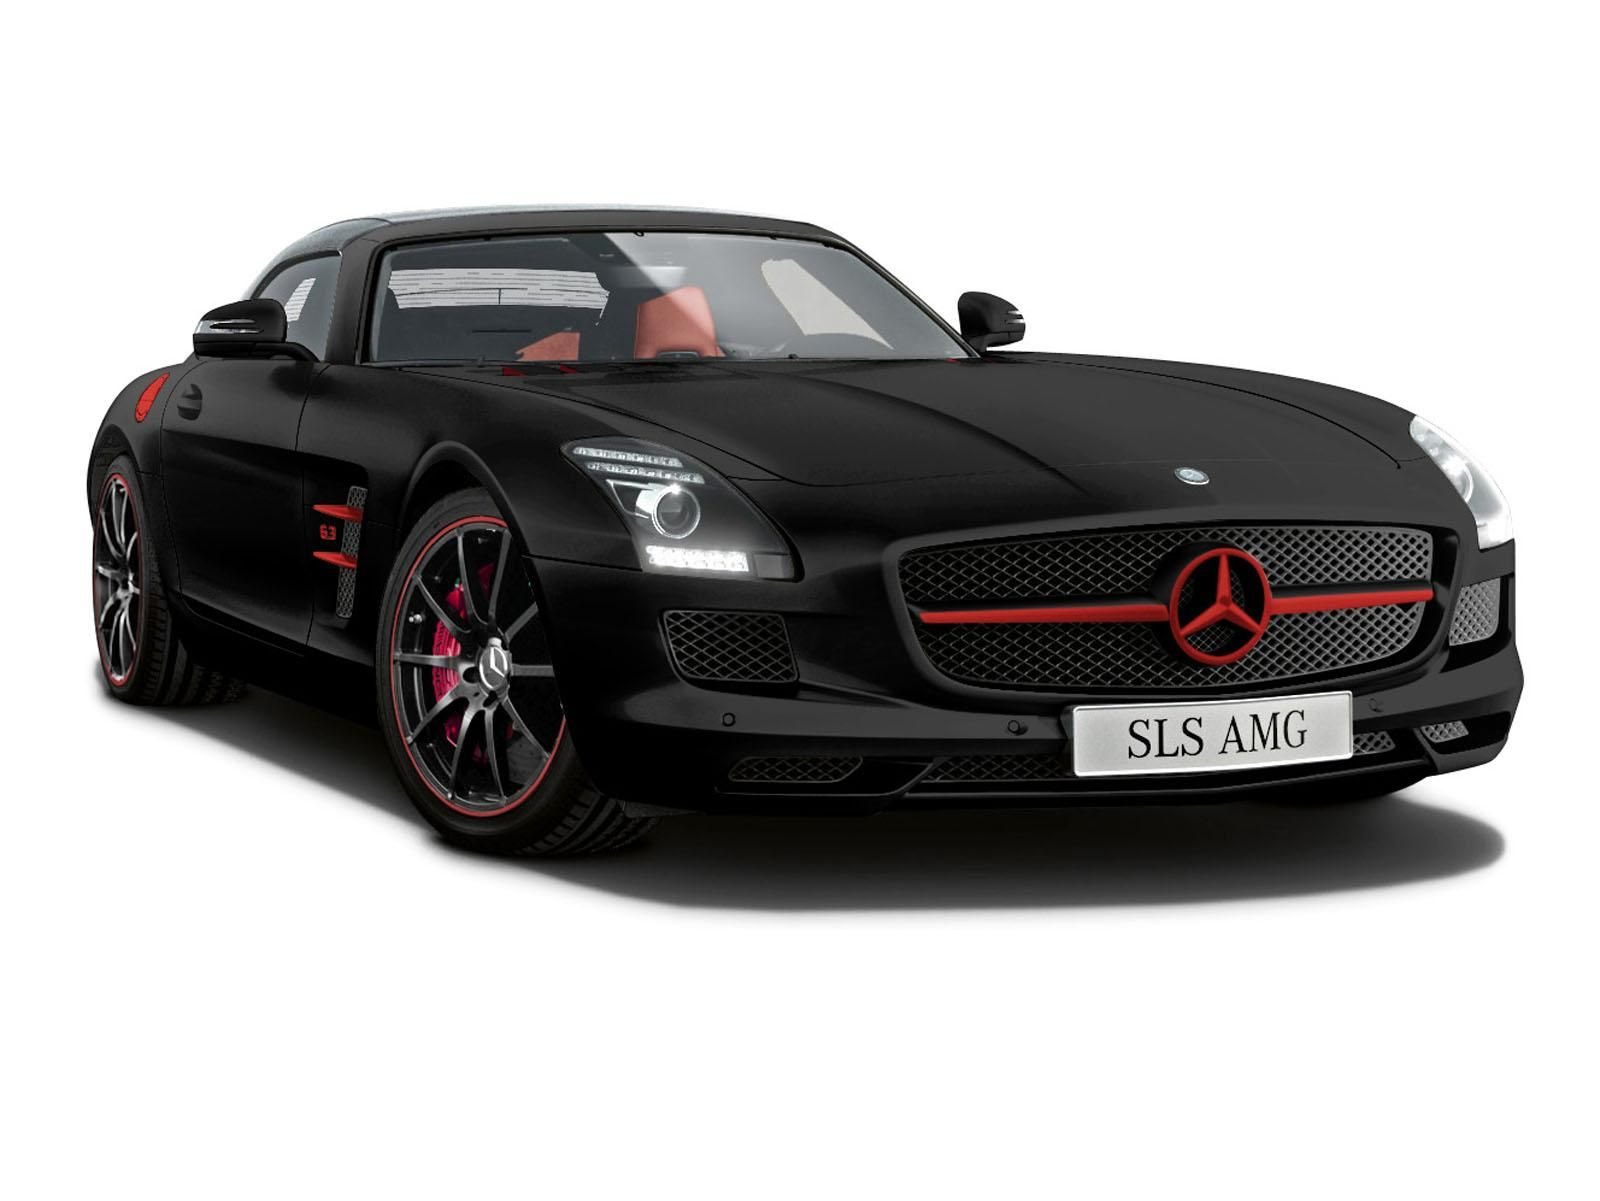 Mercedes Benz Sls Amg Matt Limited Edition With Images